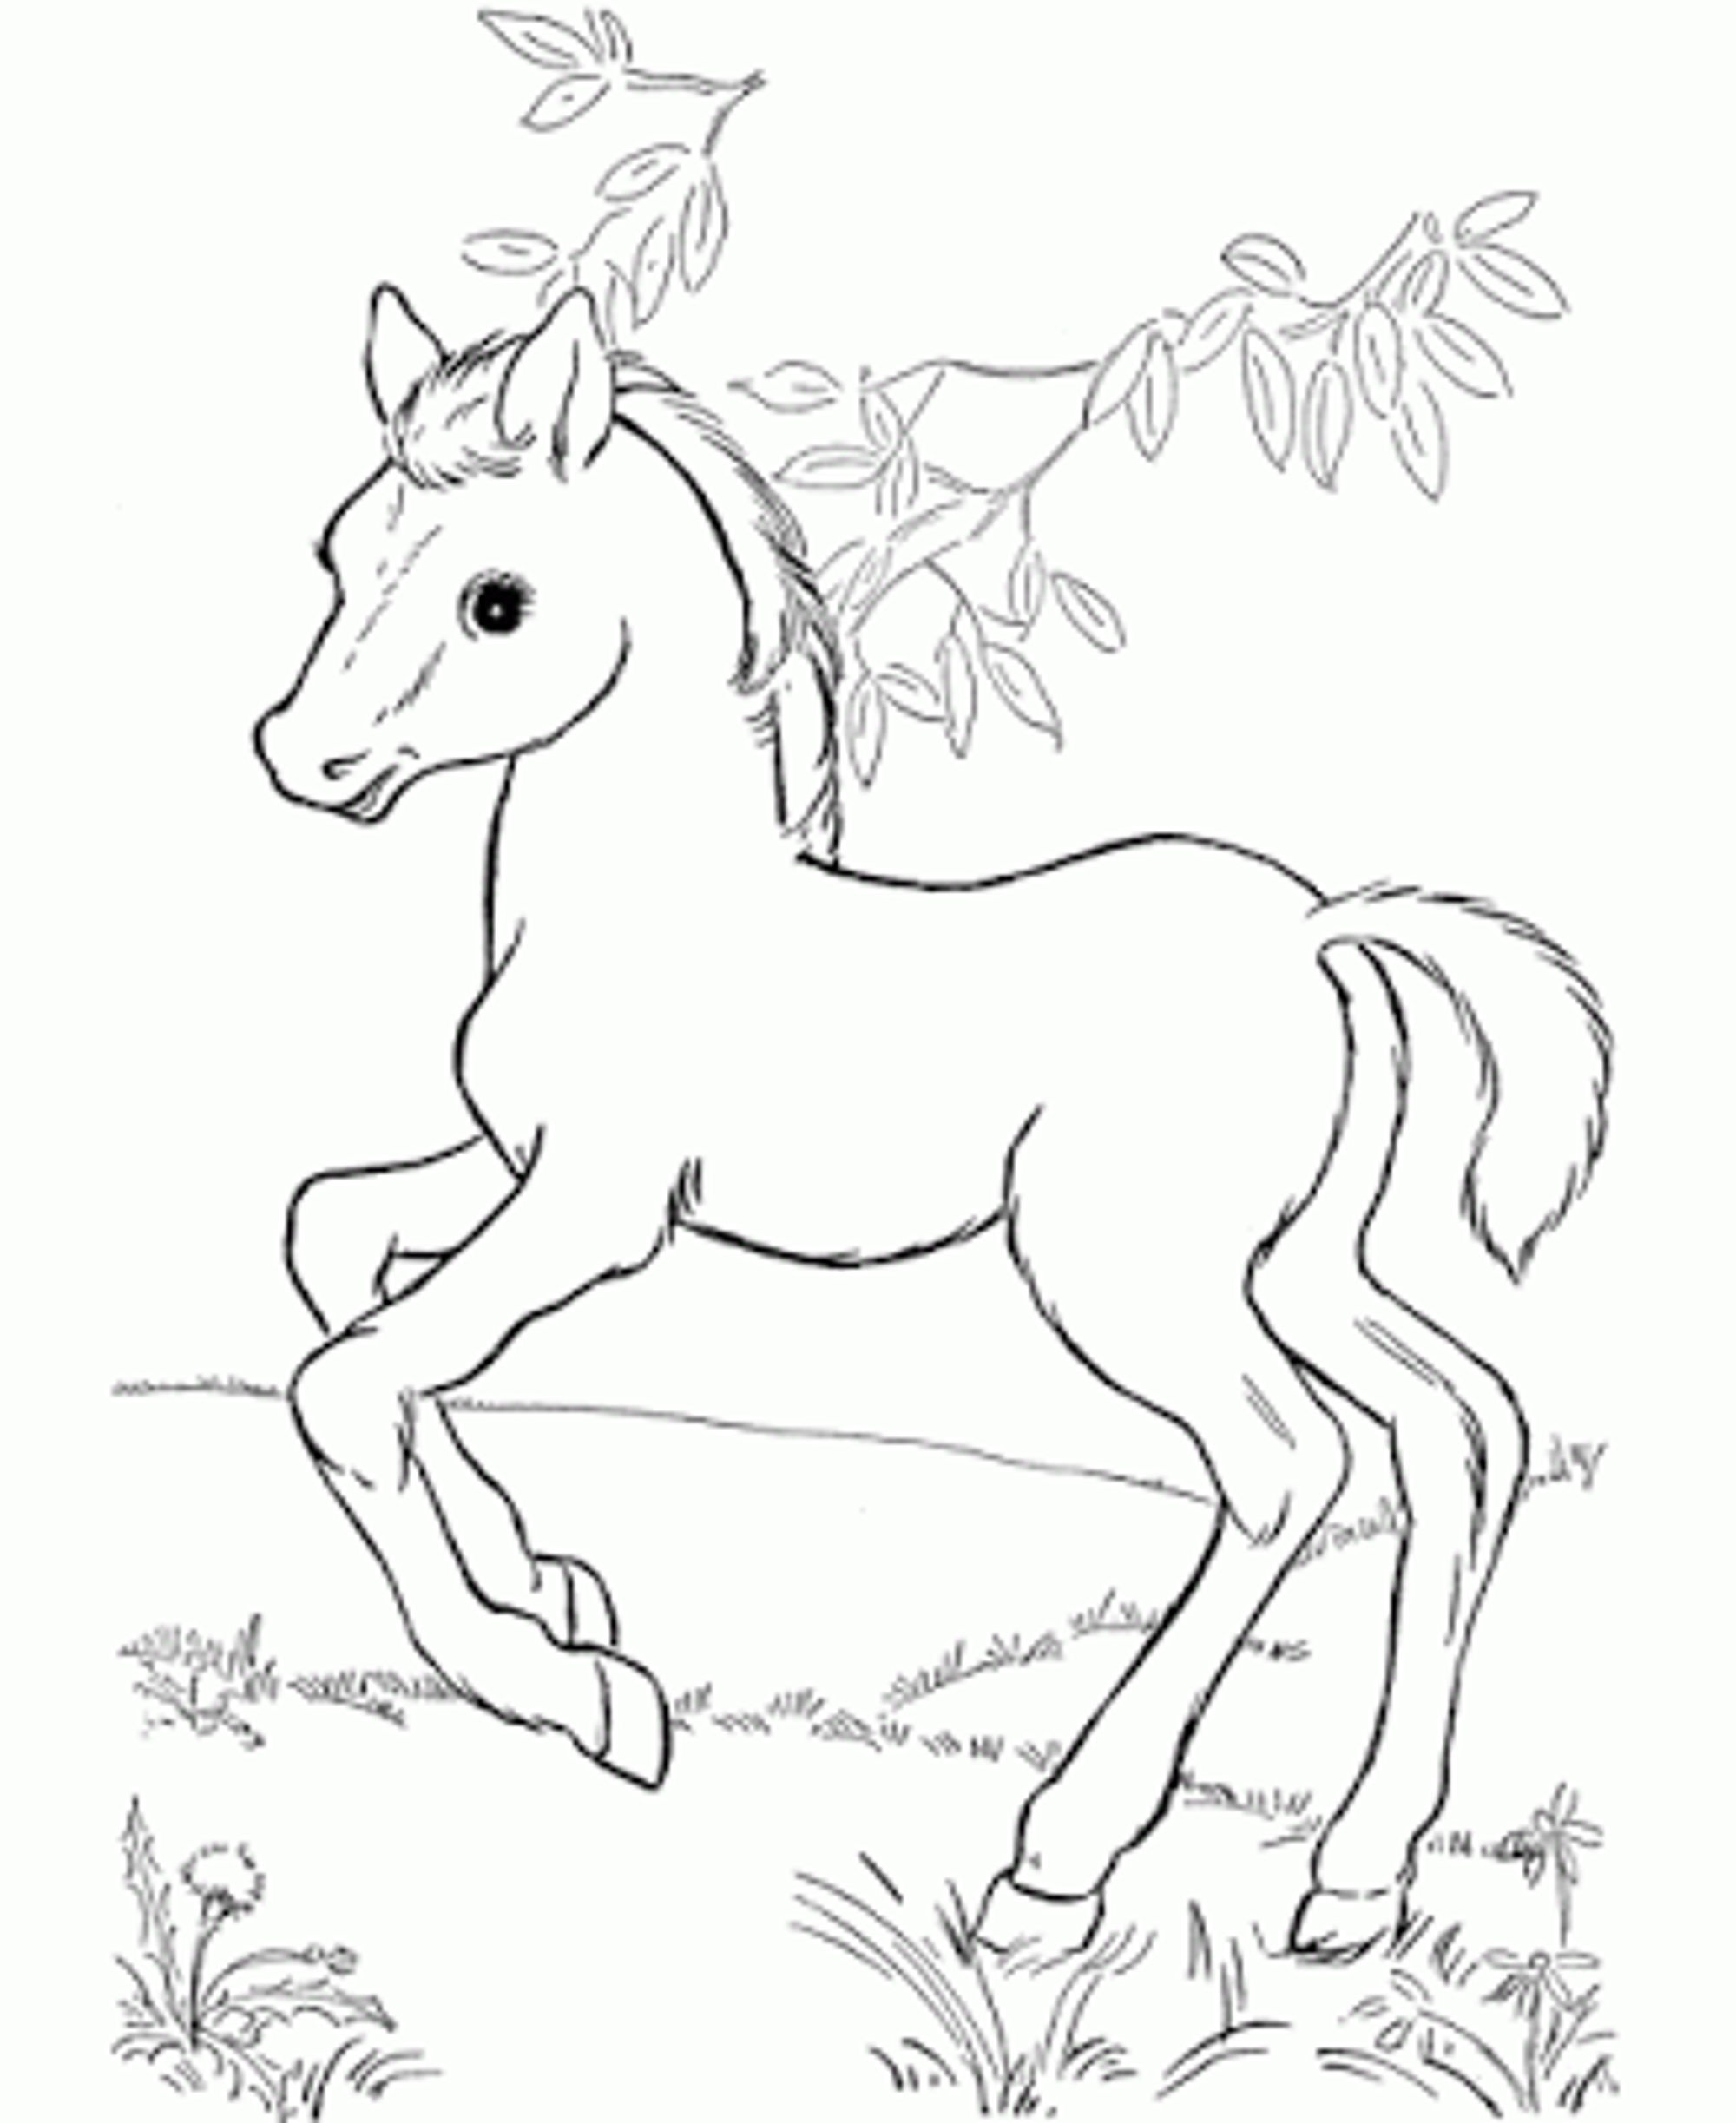 2000x2446 Running Horse Coloring Page Printable Pages Click The To View